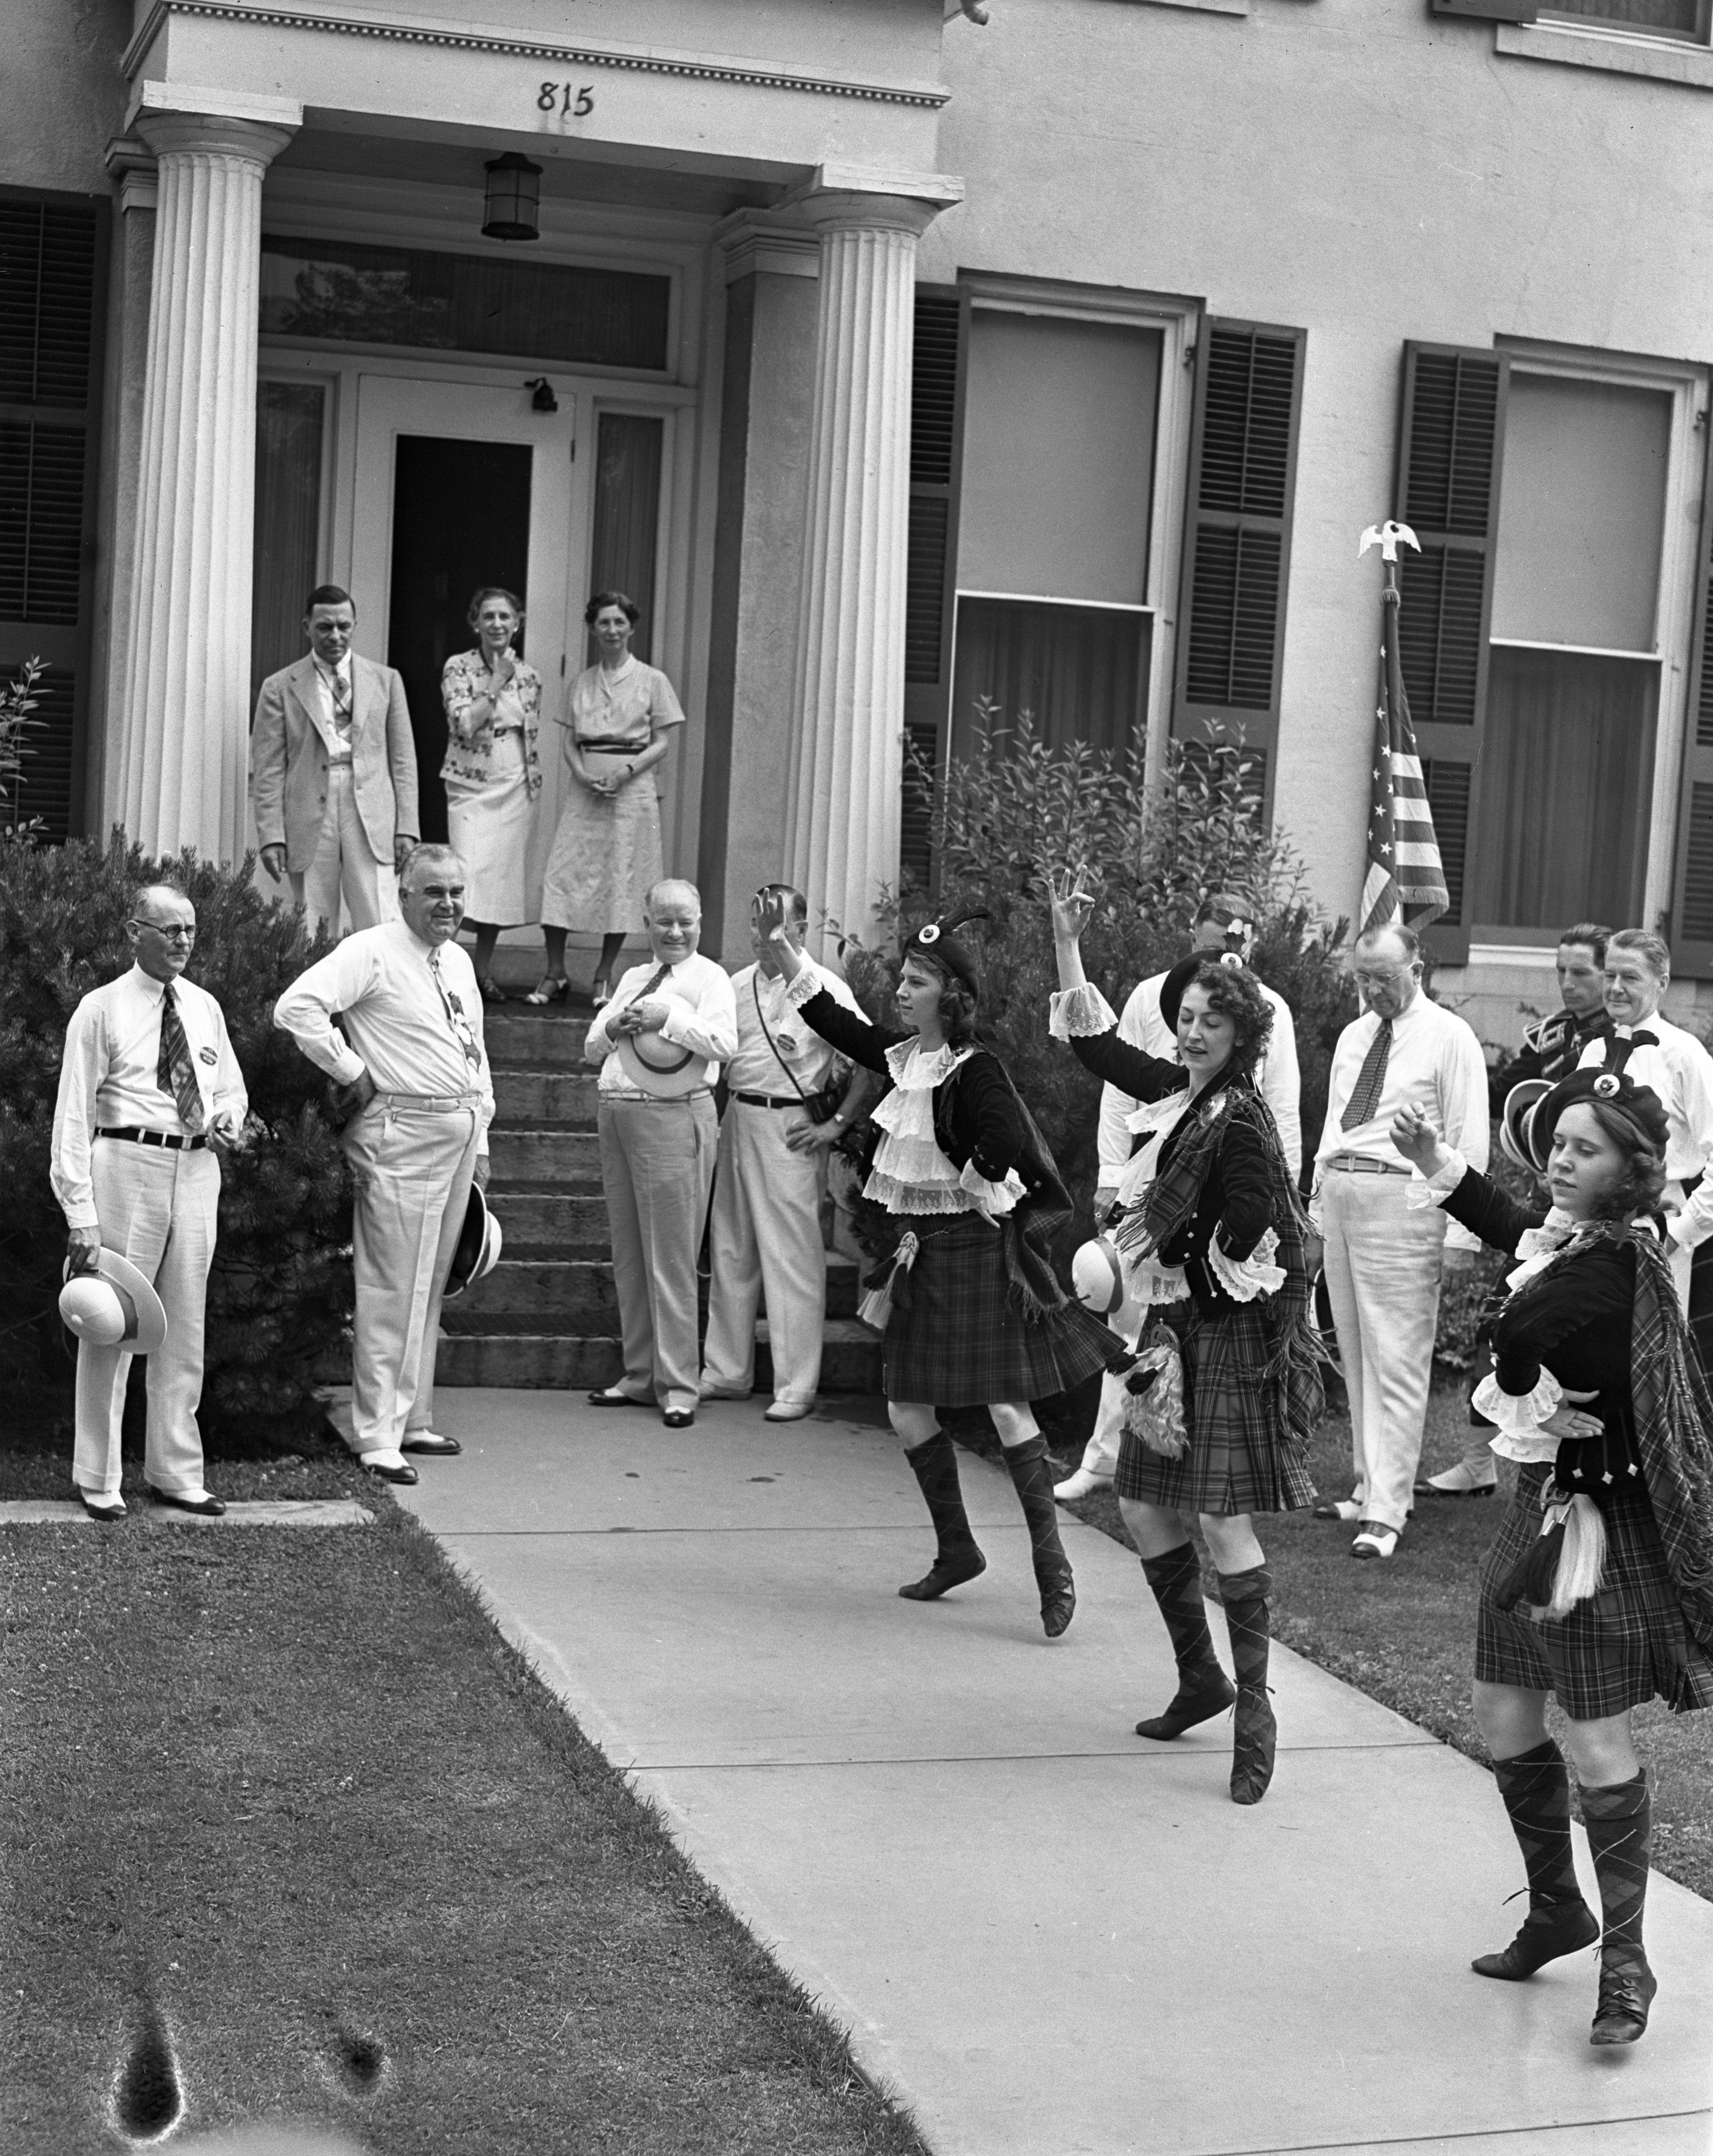 Scottish dancers perform in front of the University of Michigan's President's House for reunion class of 1909, June 1939 image